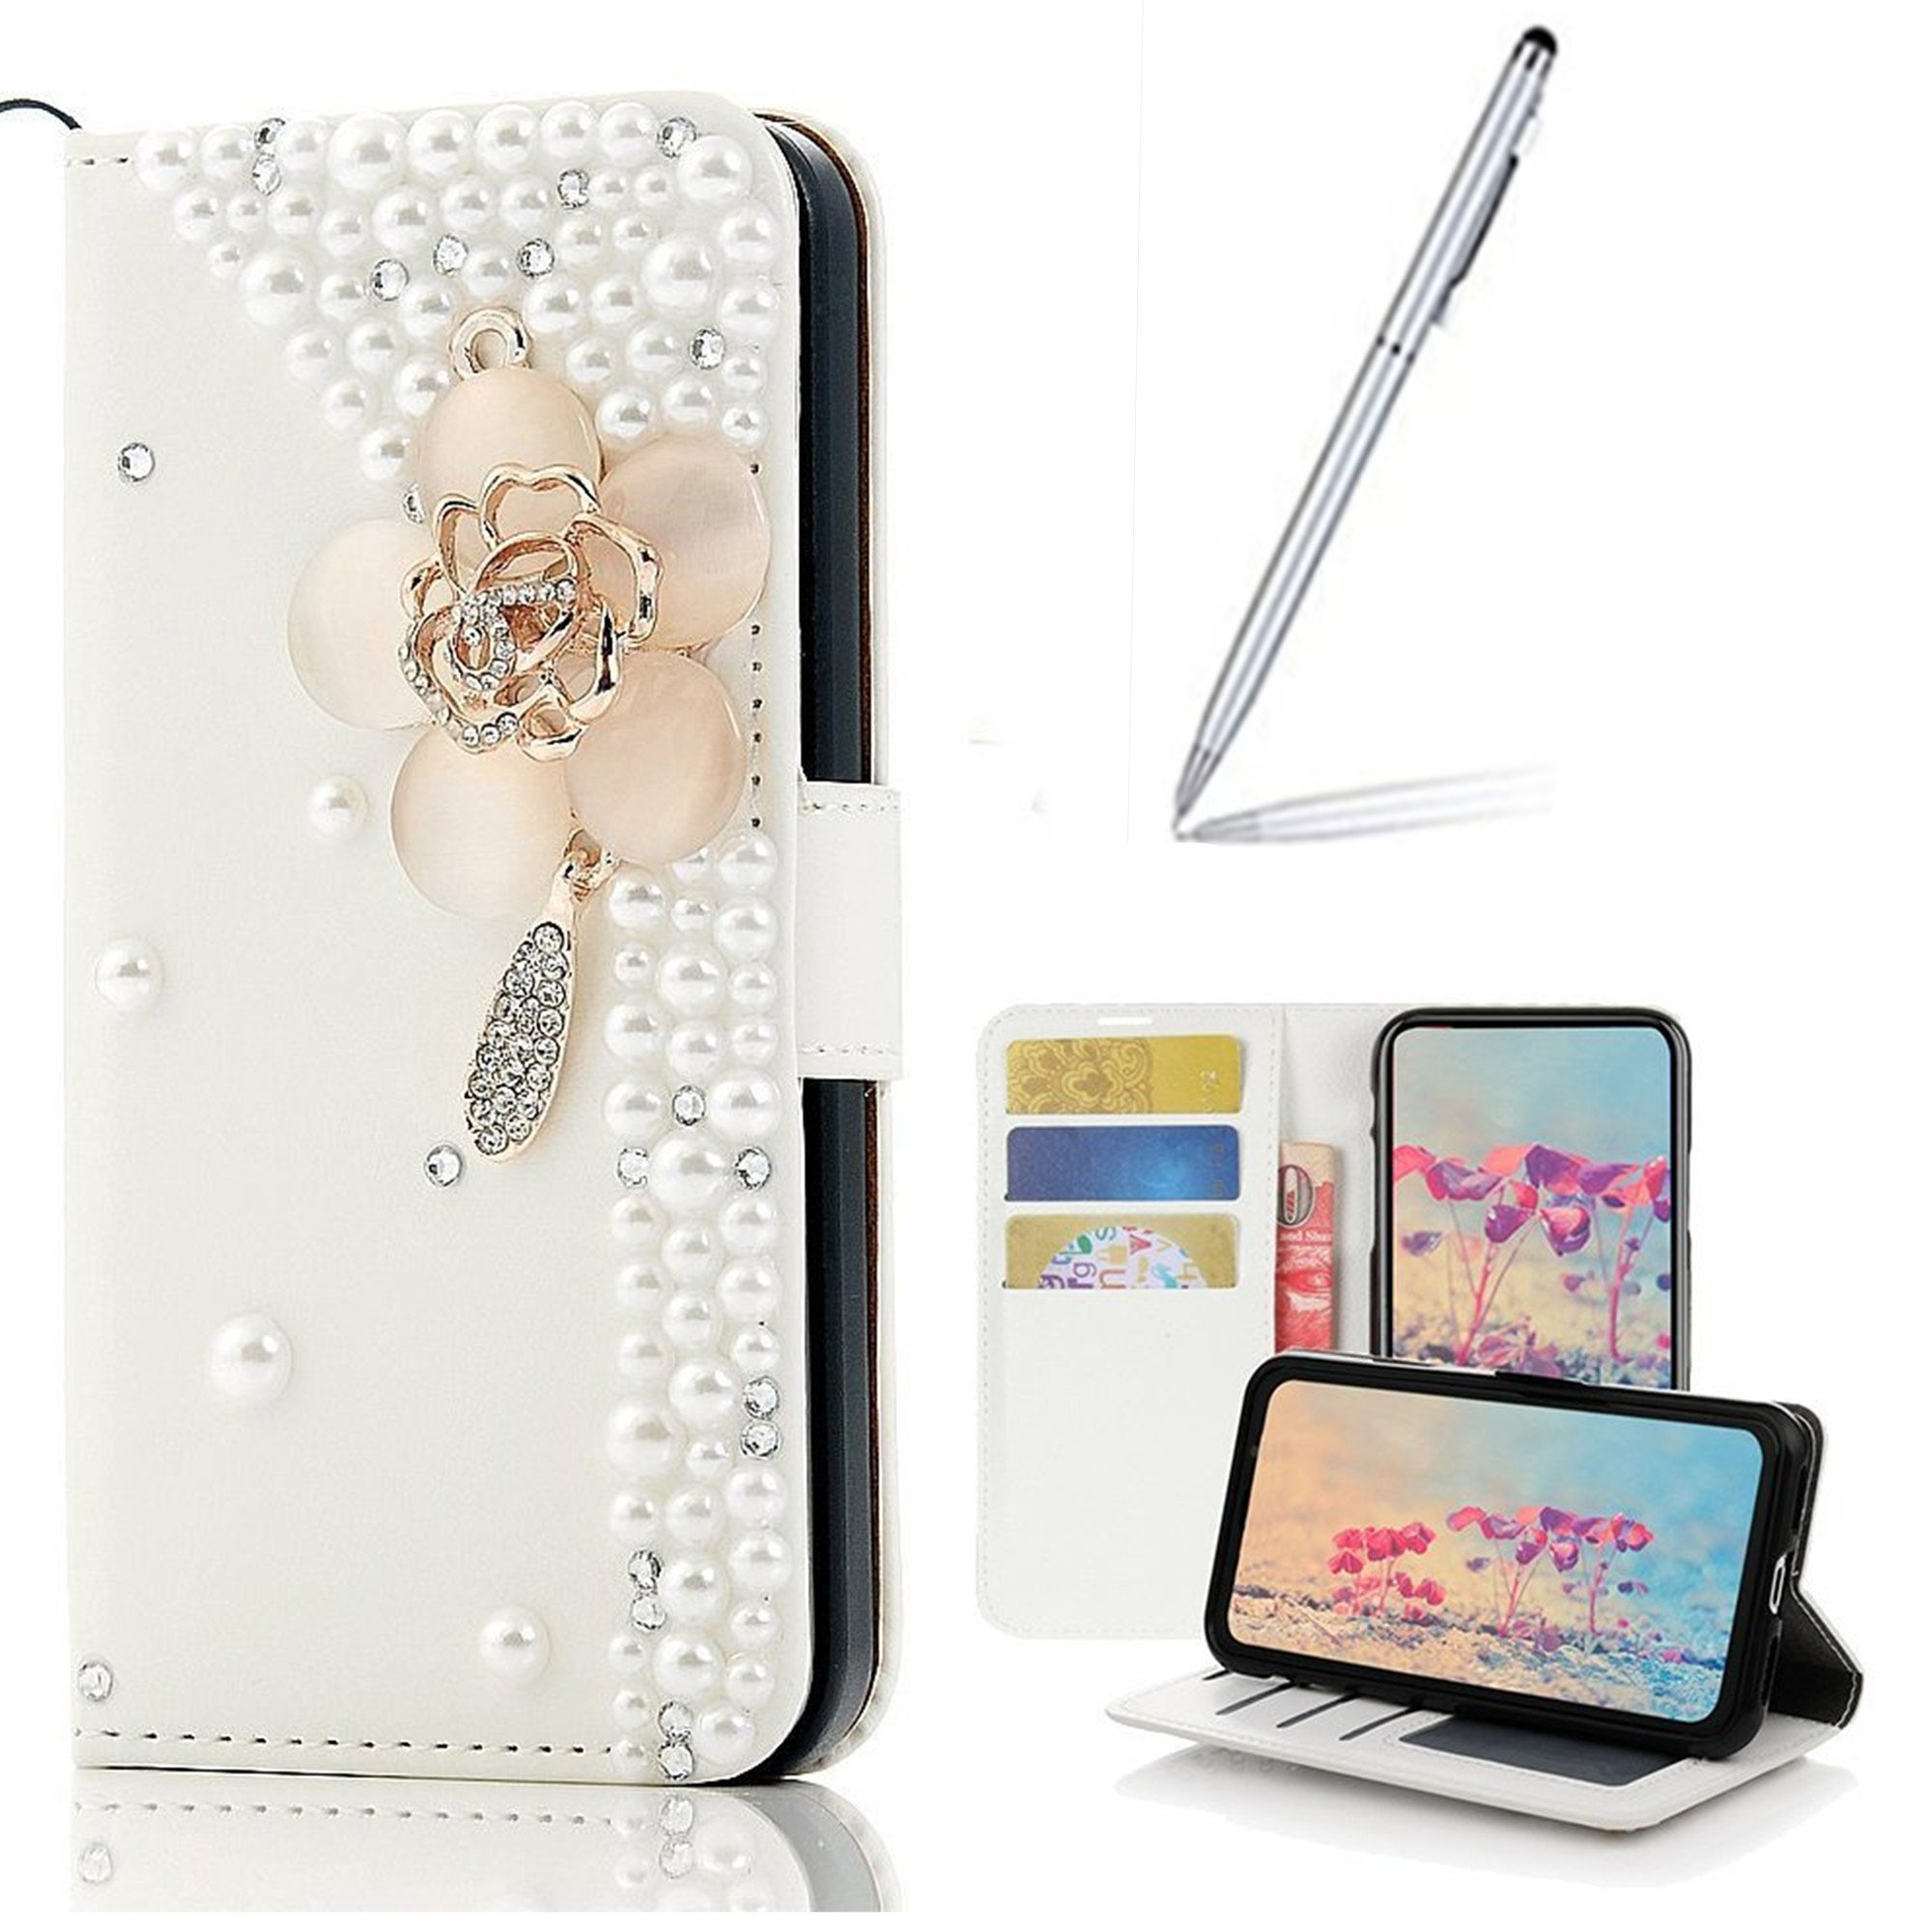 Yaheeda Galaxy J3 2018 Case with Stylus, [Stand Feature] Butterfly Wallet Premium [Glitter Luxury] Leather Flip Cover [Card Slots] for J3 Eclipse 2/J3 Orbit/J3 Achieve/J3 Express Prime 3/J3 Prime 2